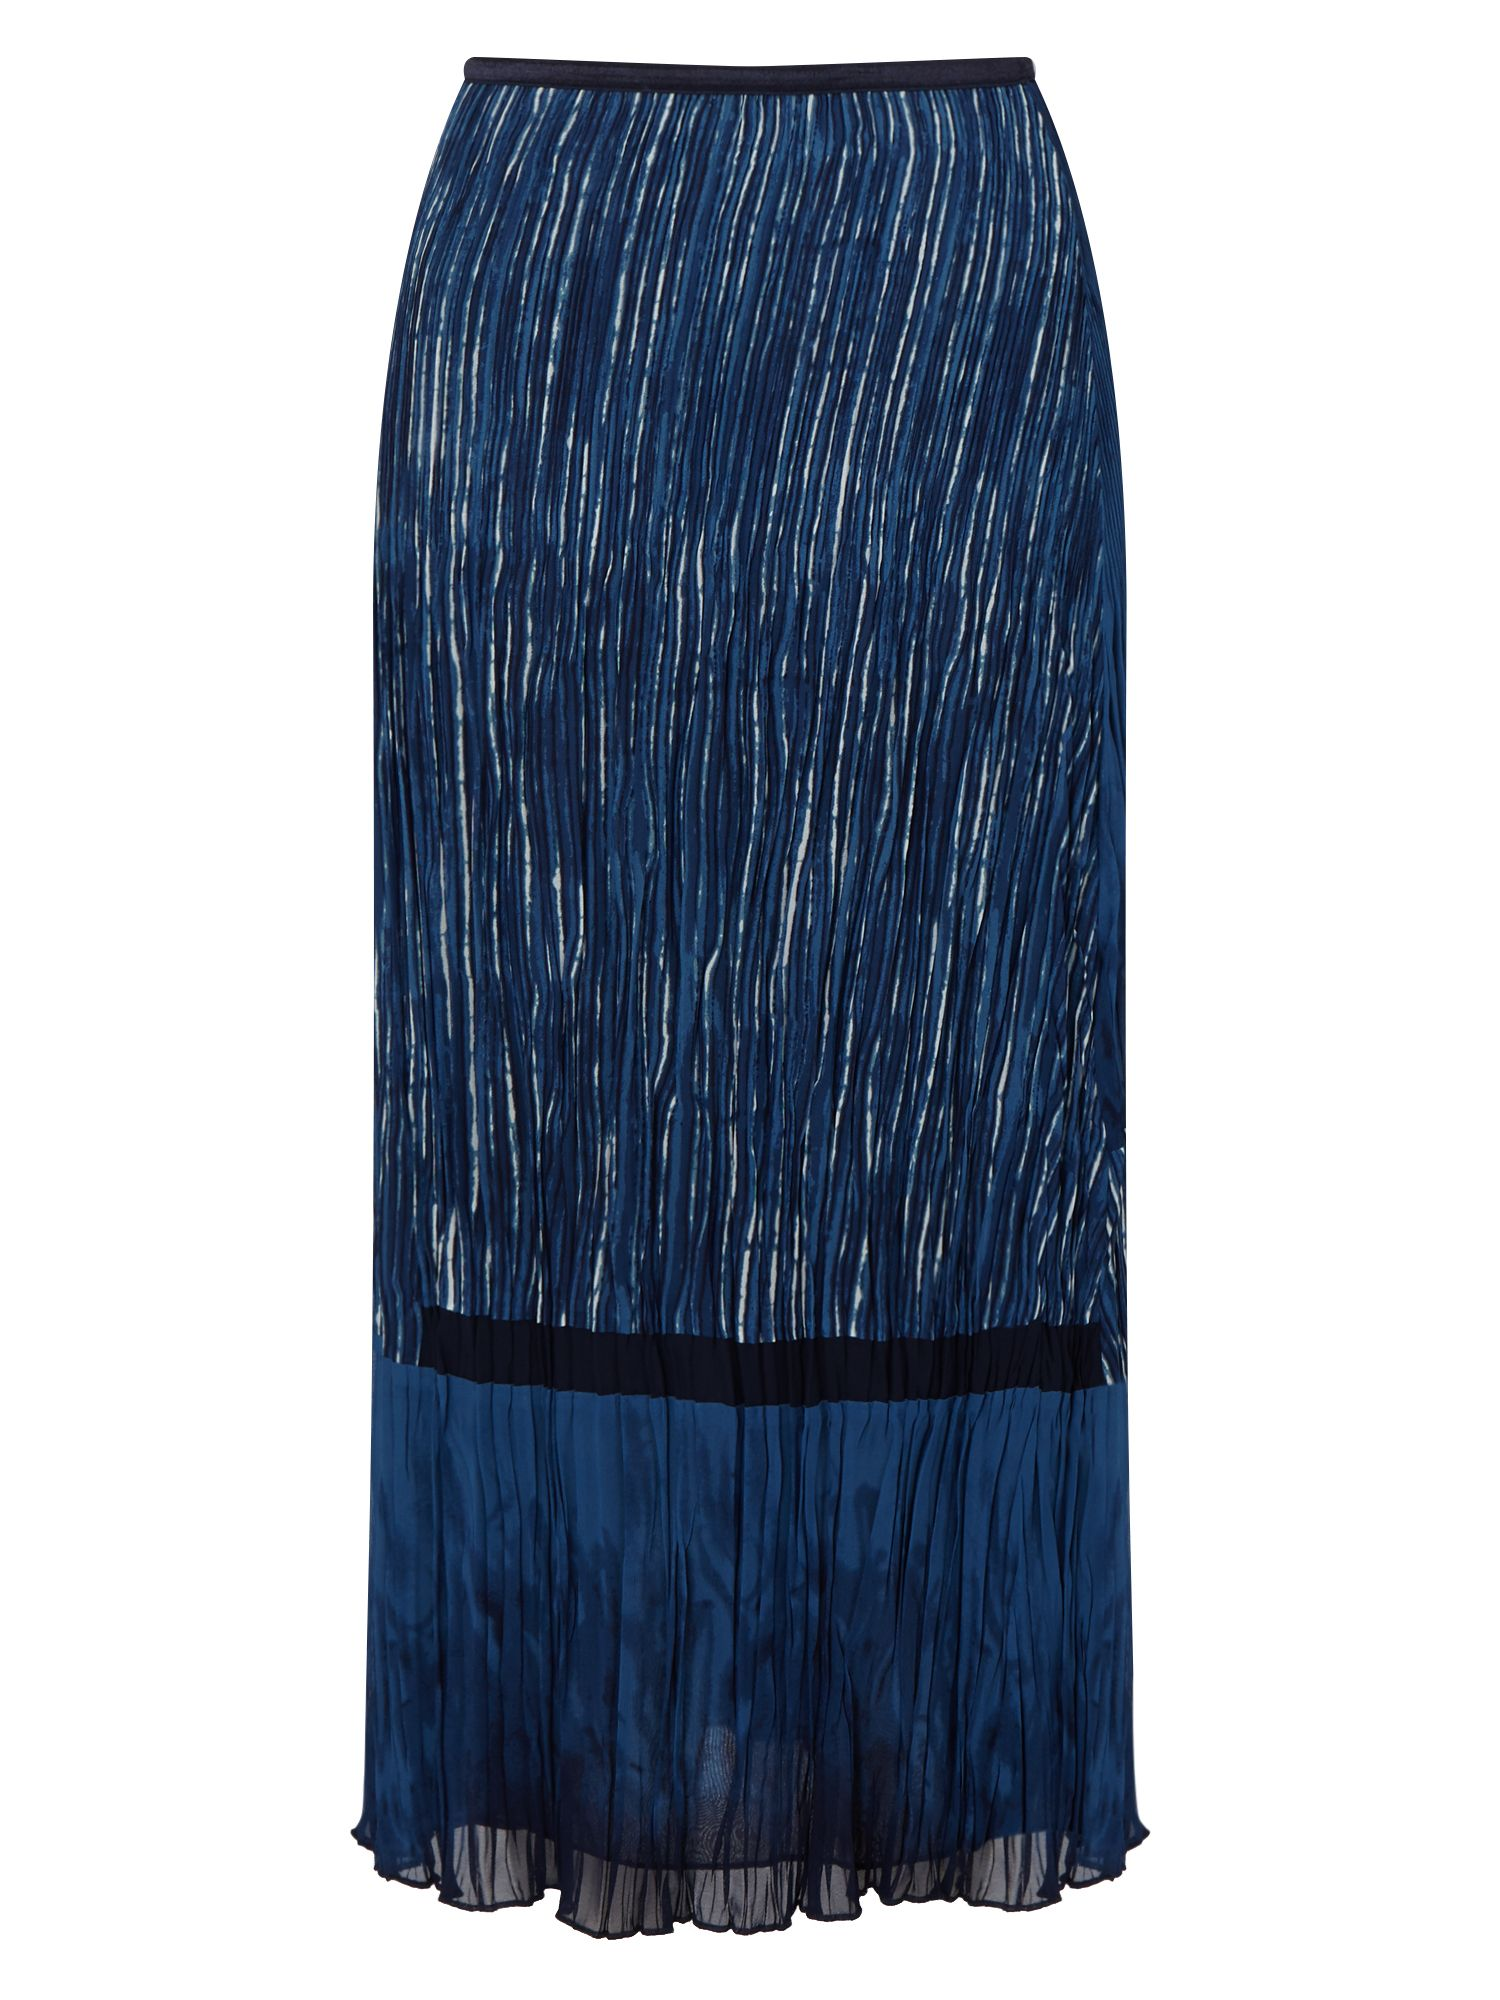 East Lucille Print Pleat Skirt, Blue